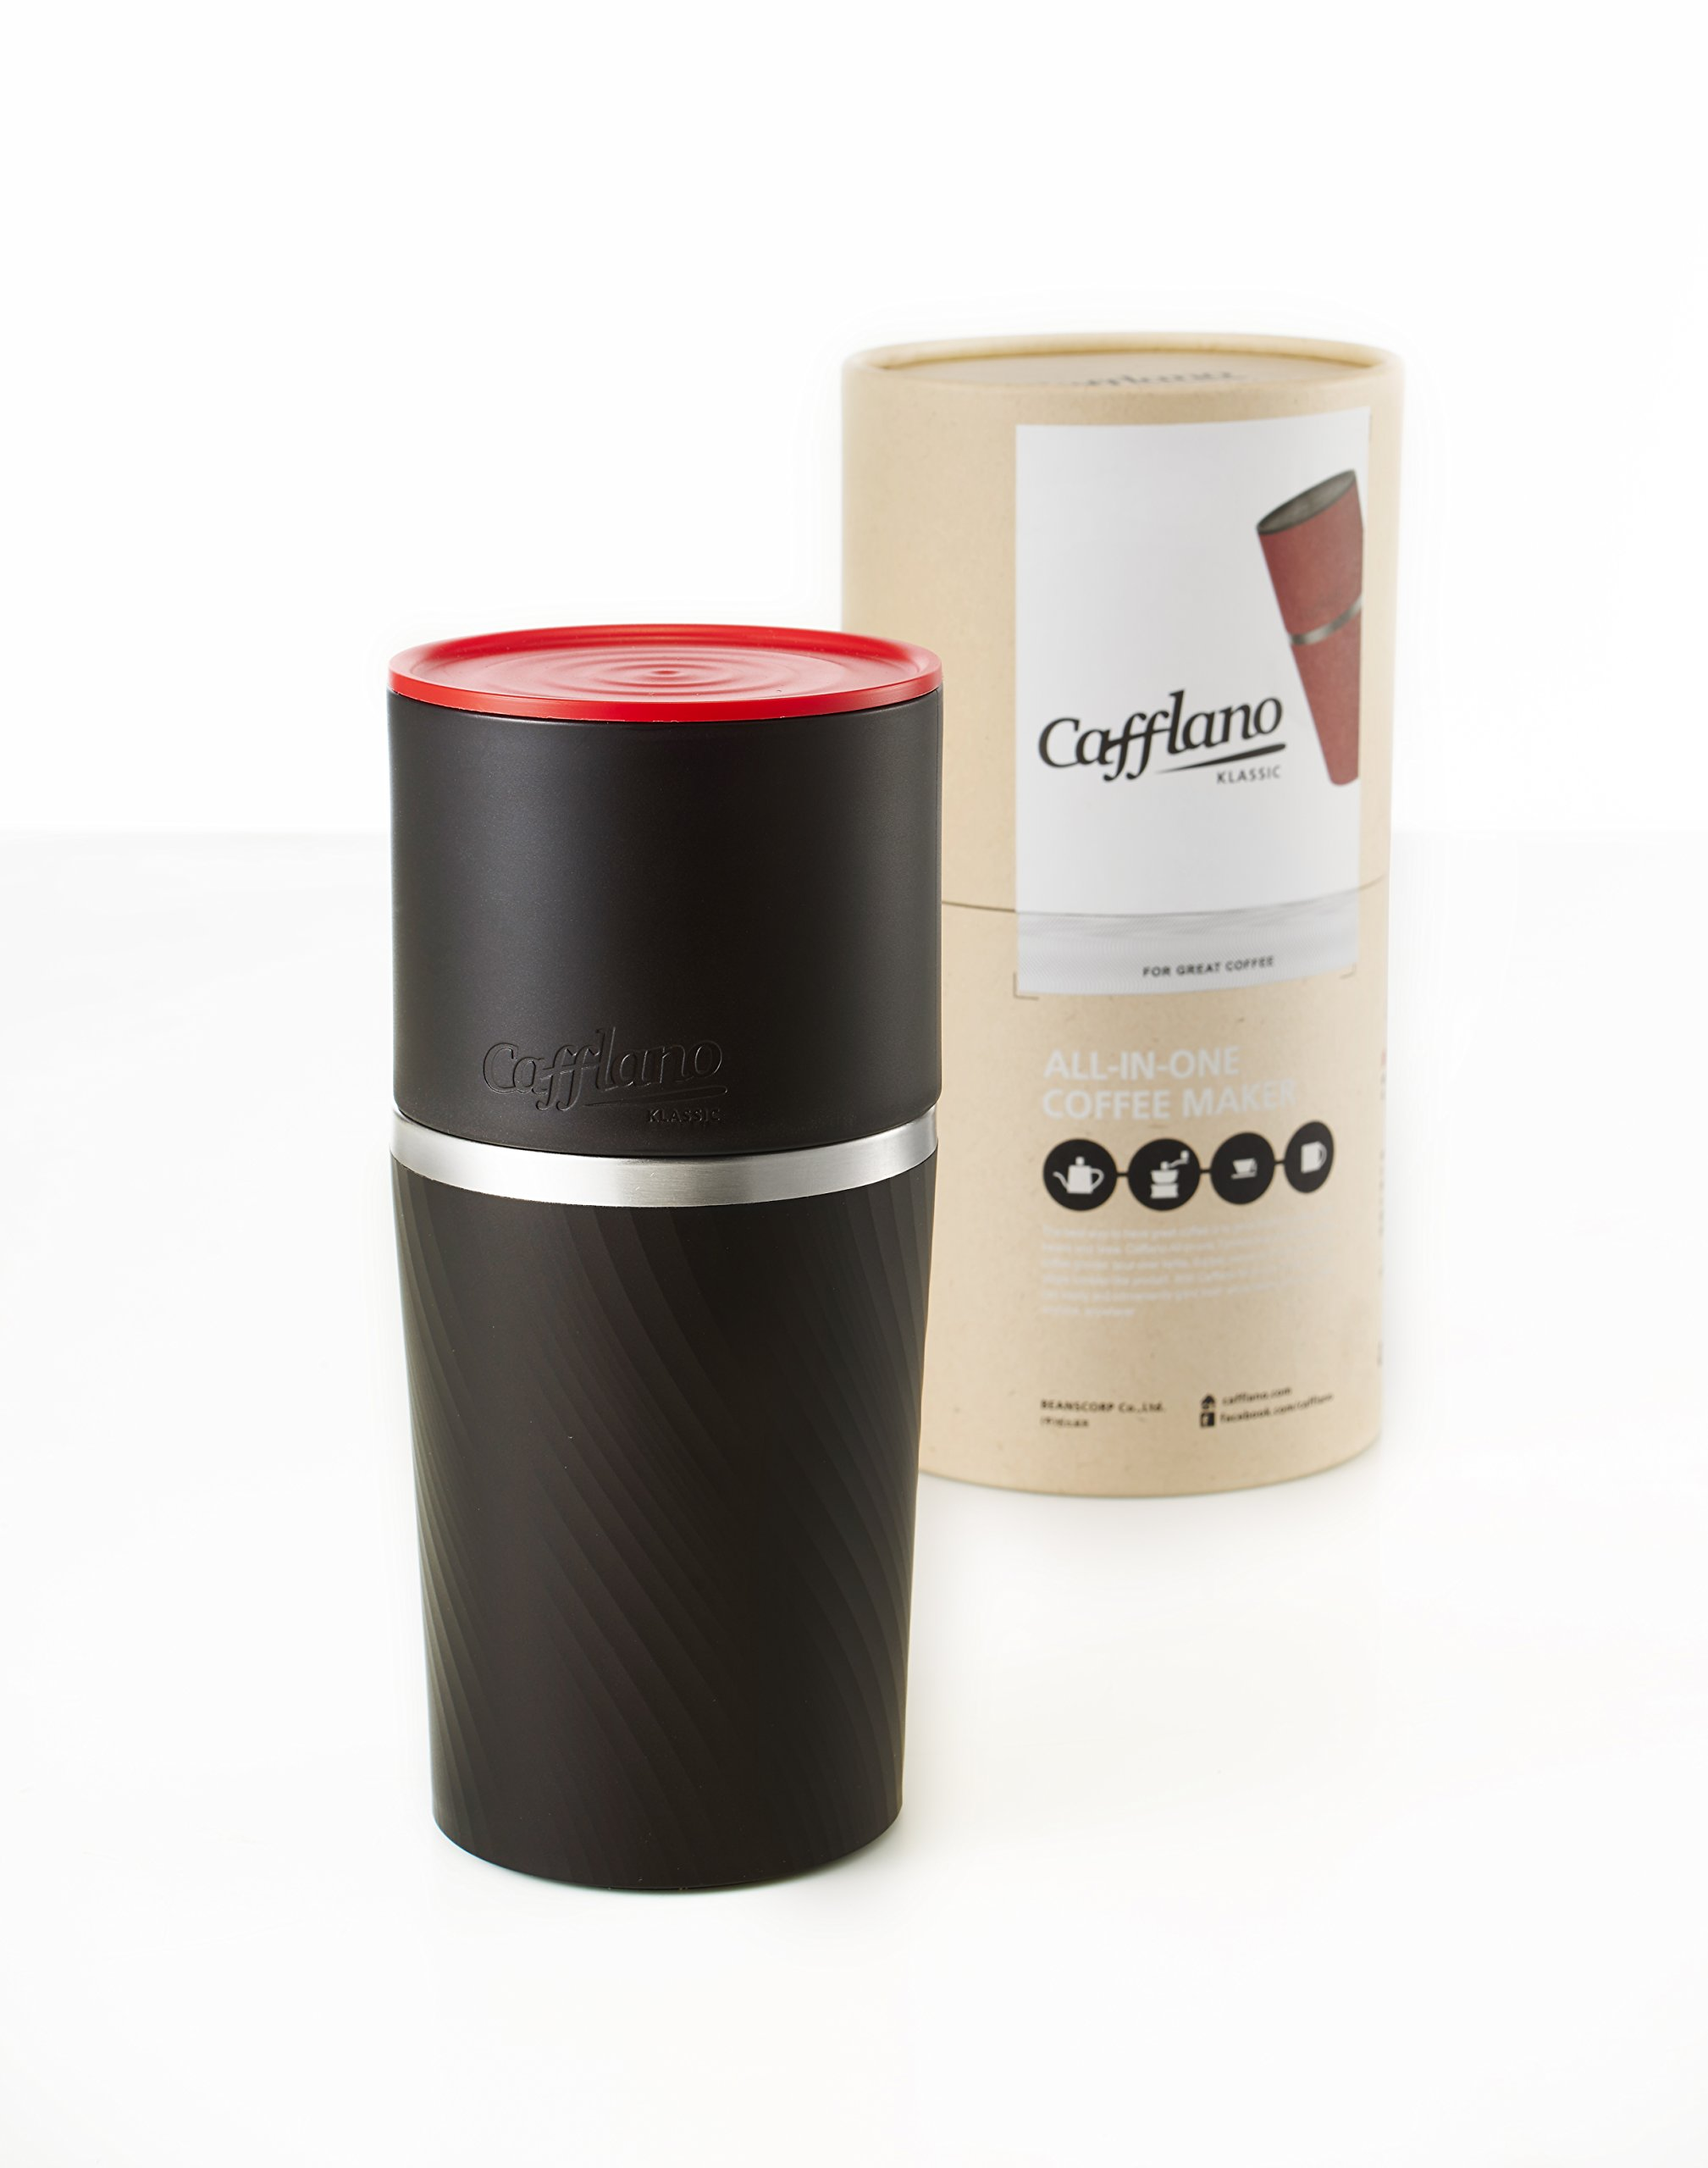 Cafflano World's First Portable All-in-one Coffee Maker Tumbler Hand Mill Grinder Dripper by Cafflano